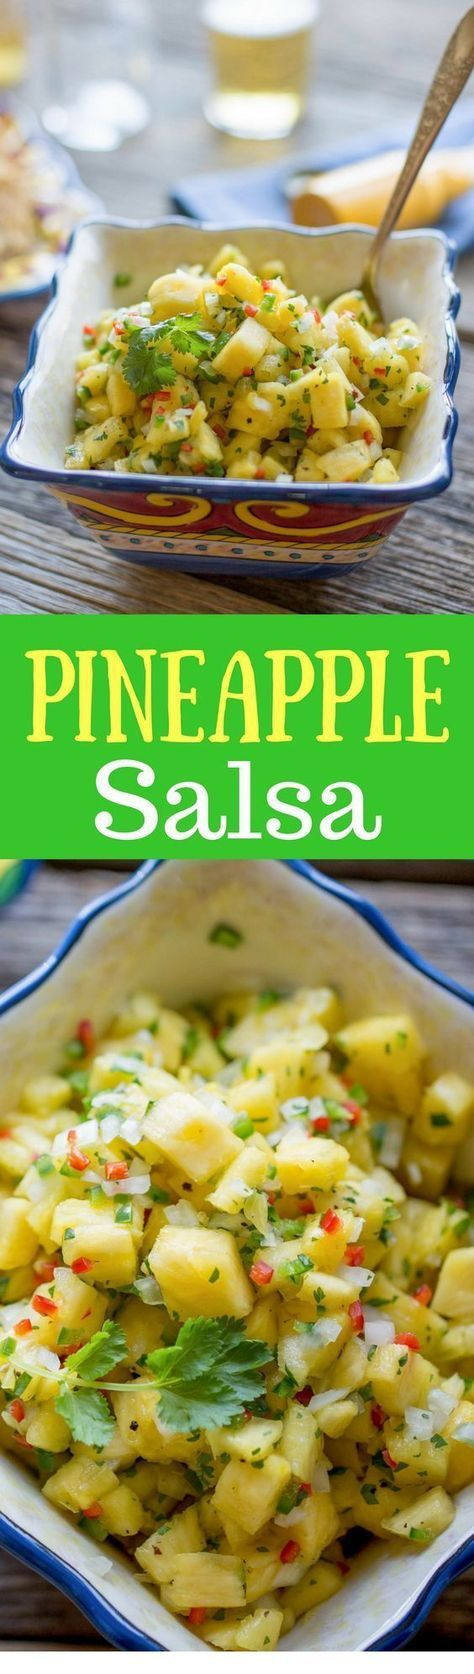 Easy & Fresh Pineapple Salsa - A wonderfully easy salsa that is great on tacos, grilled chicken, burritos or with a bag of chips.  http://www.savingdessert.com